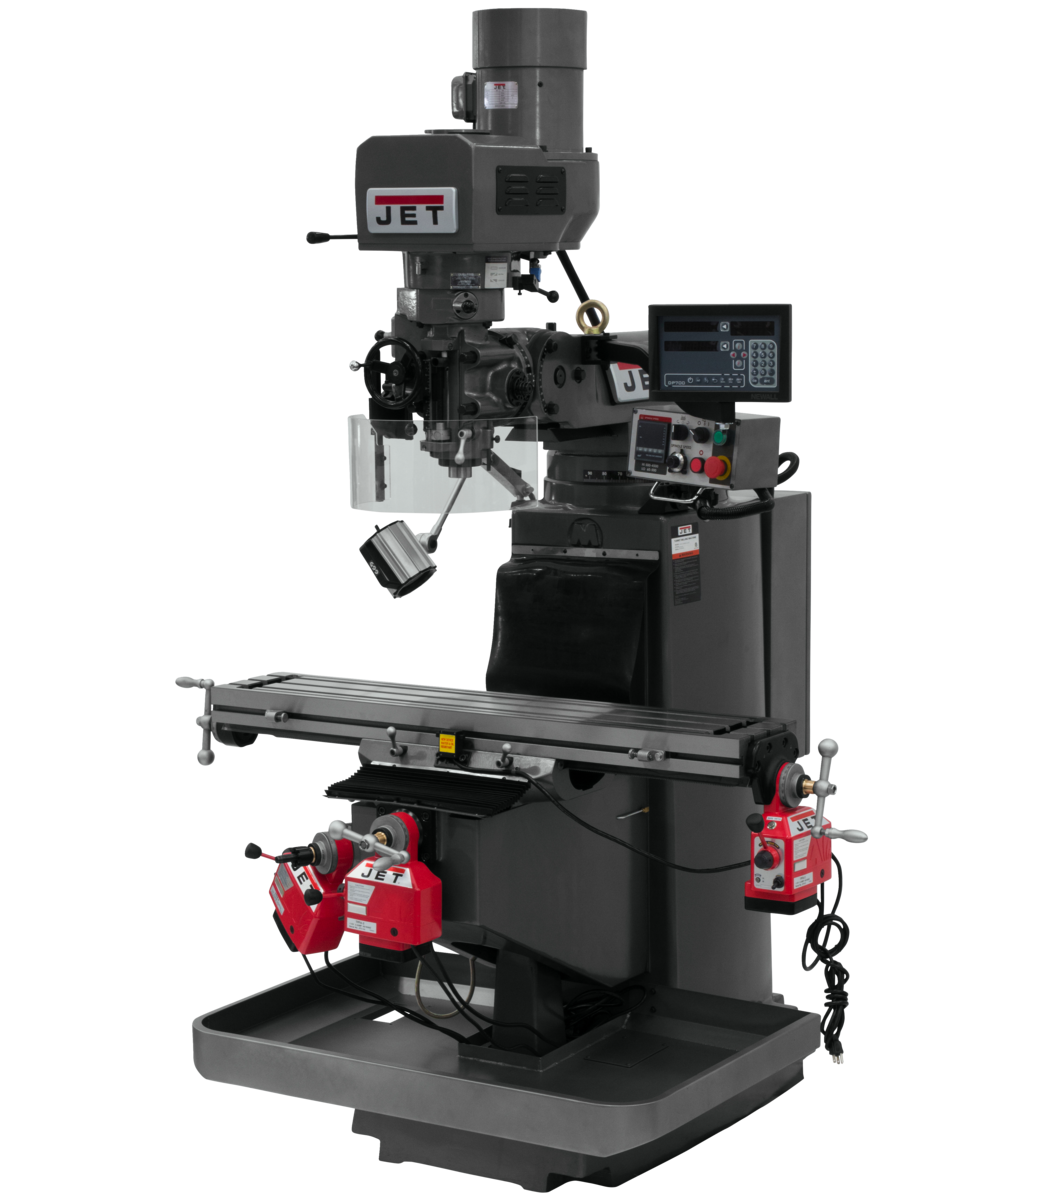 JTM-949EVS Mill With 3-Axis Newall DP700 DRO (Quill) With X, Y and Z-Axis Powerfeeds